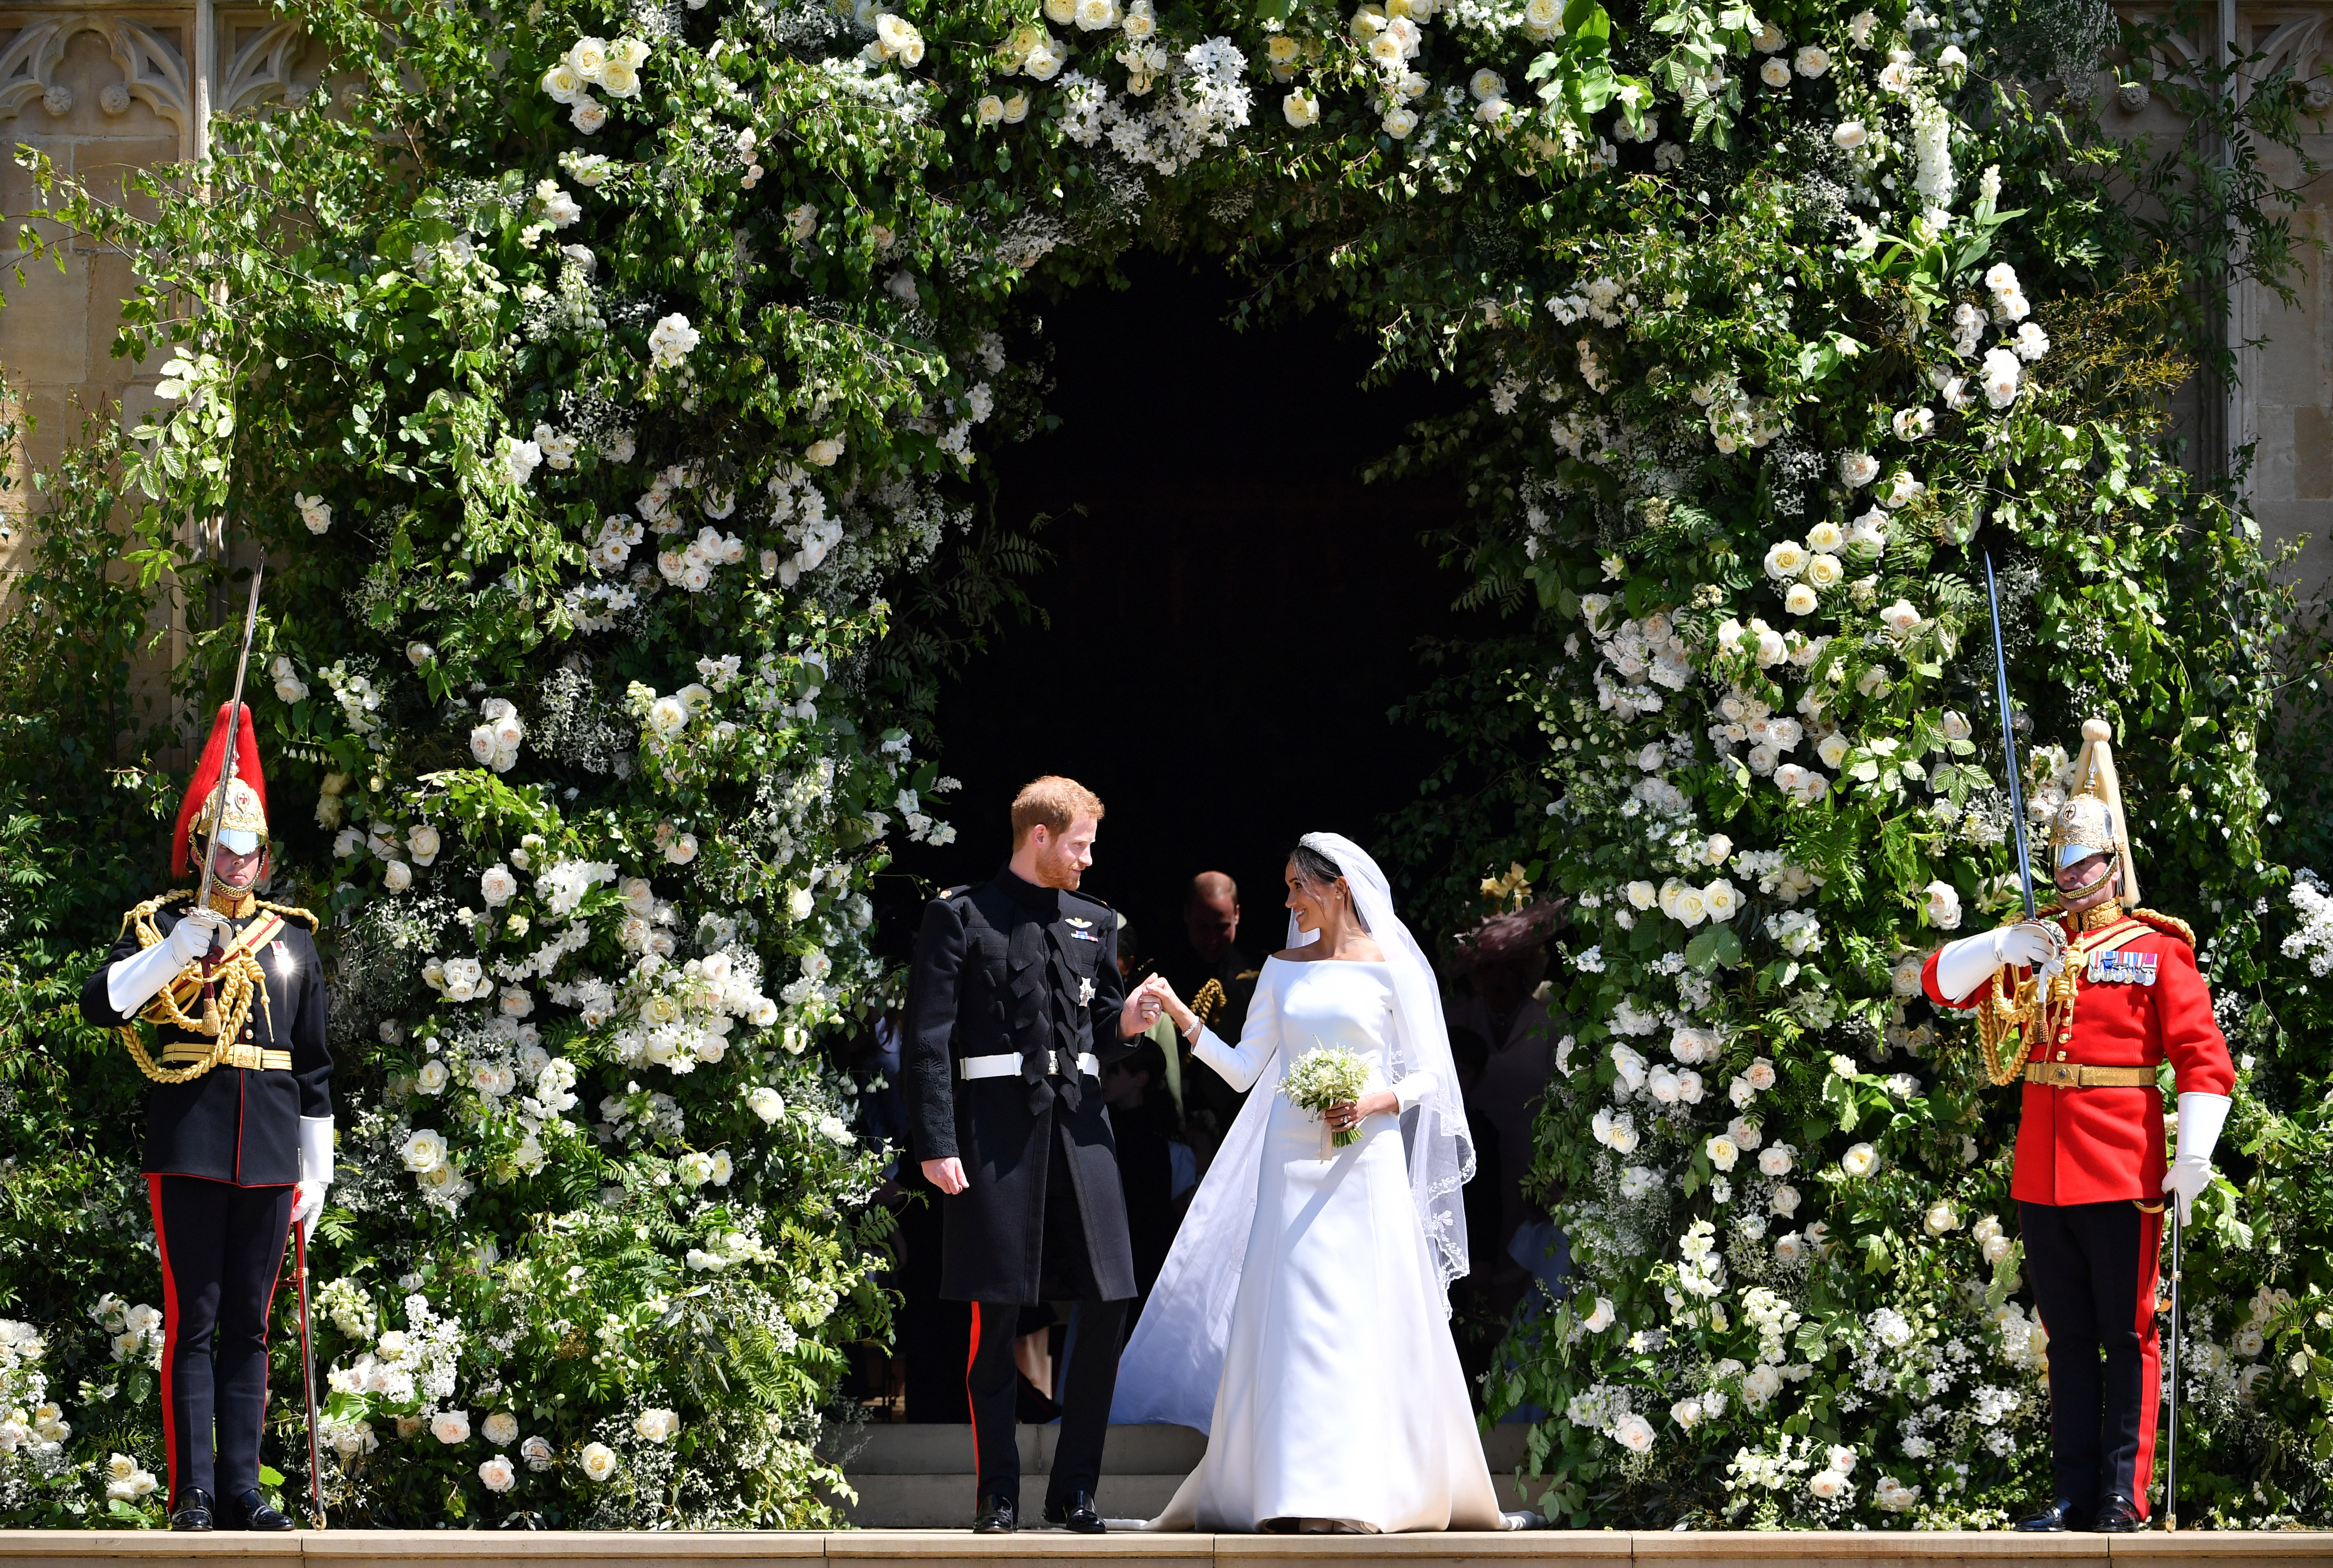 Prince Harry and Meghan Markle recessional royal wedding 2018